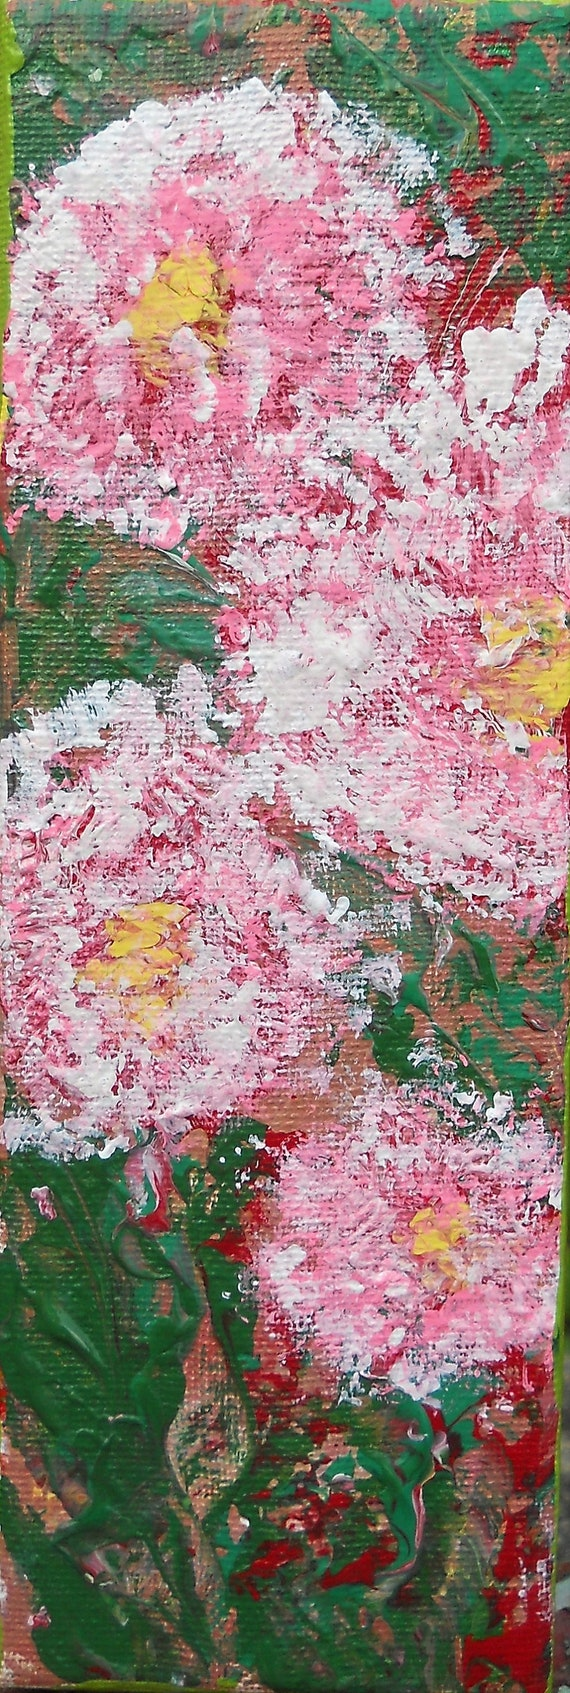 "Original Art ""CARNATIONS"" Acrylic Abstract Impressionism Painting, 9 x 3"" Canvas, by Award Winning Artist Stacey Torres, floral art, pink"